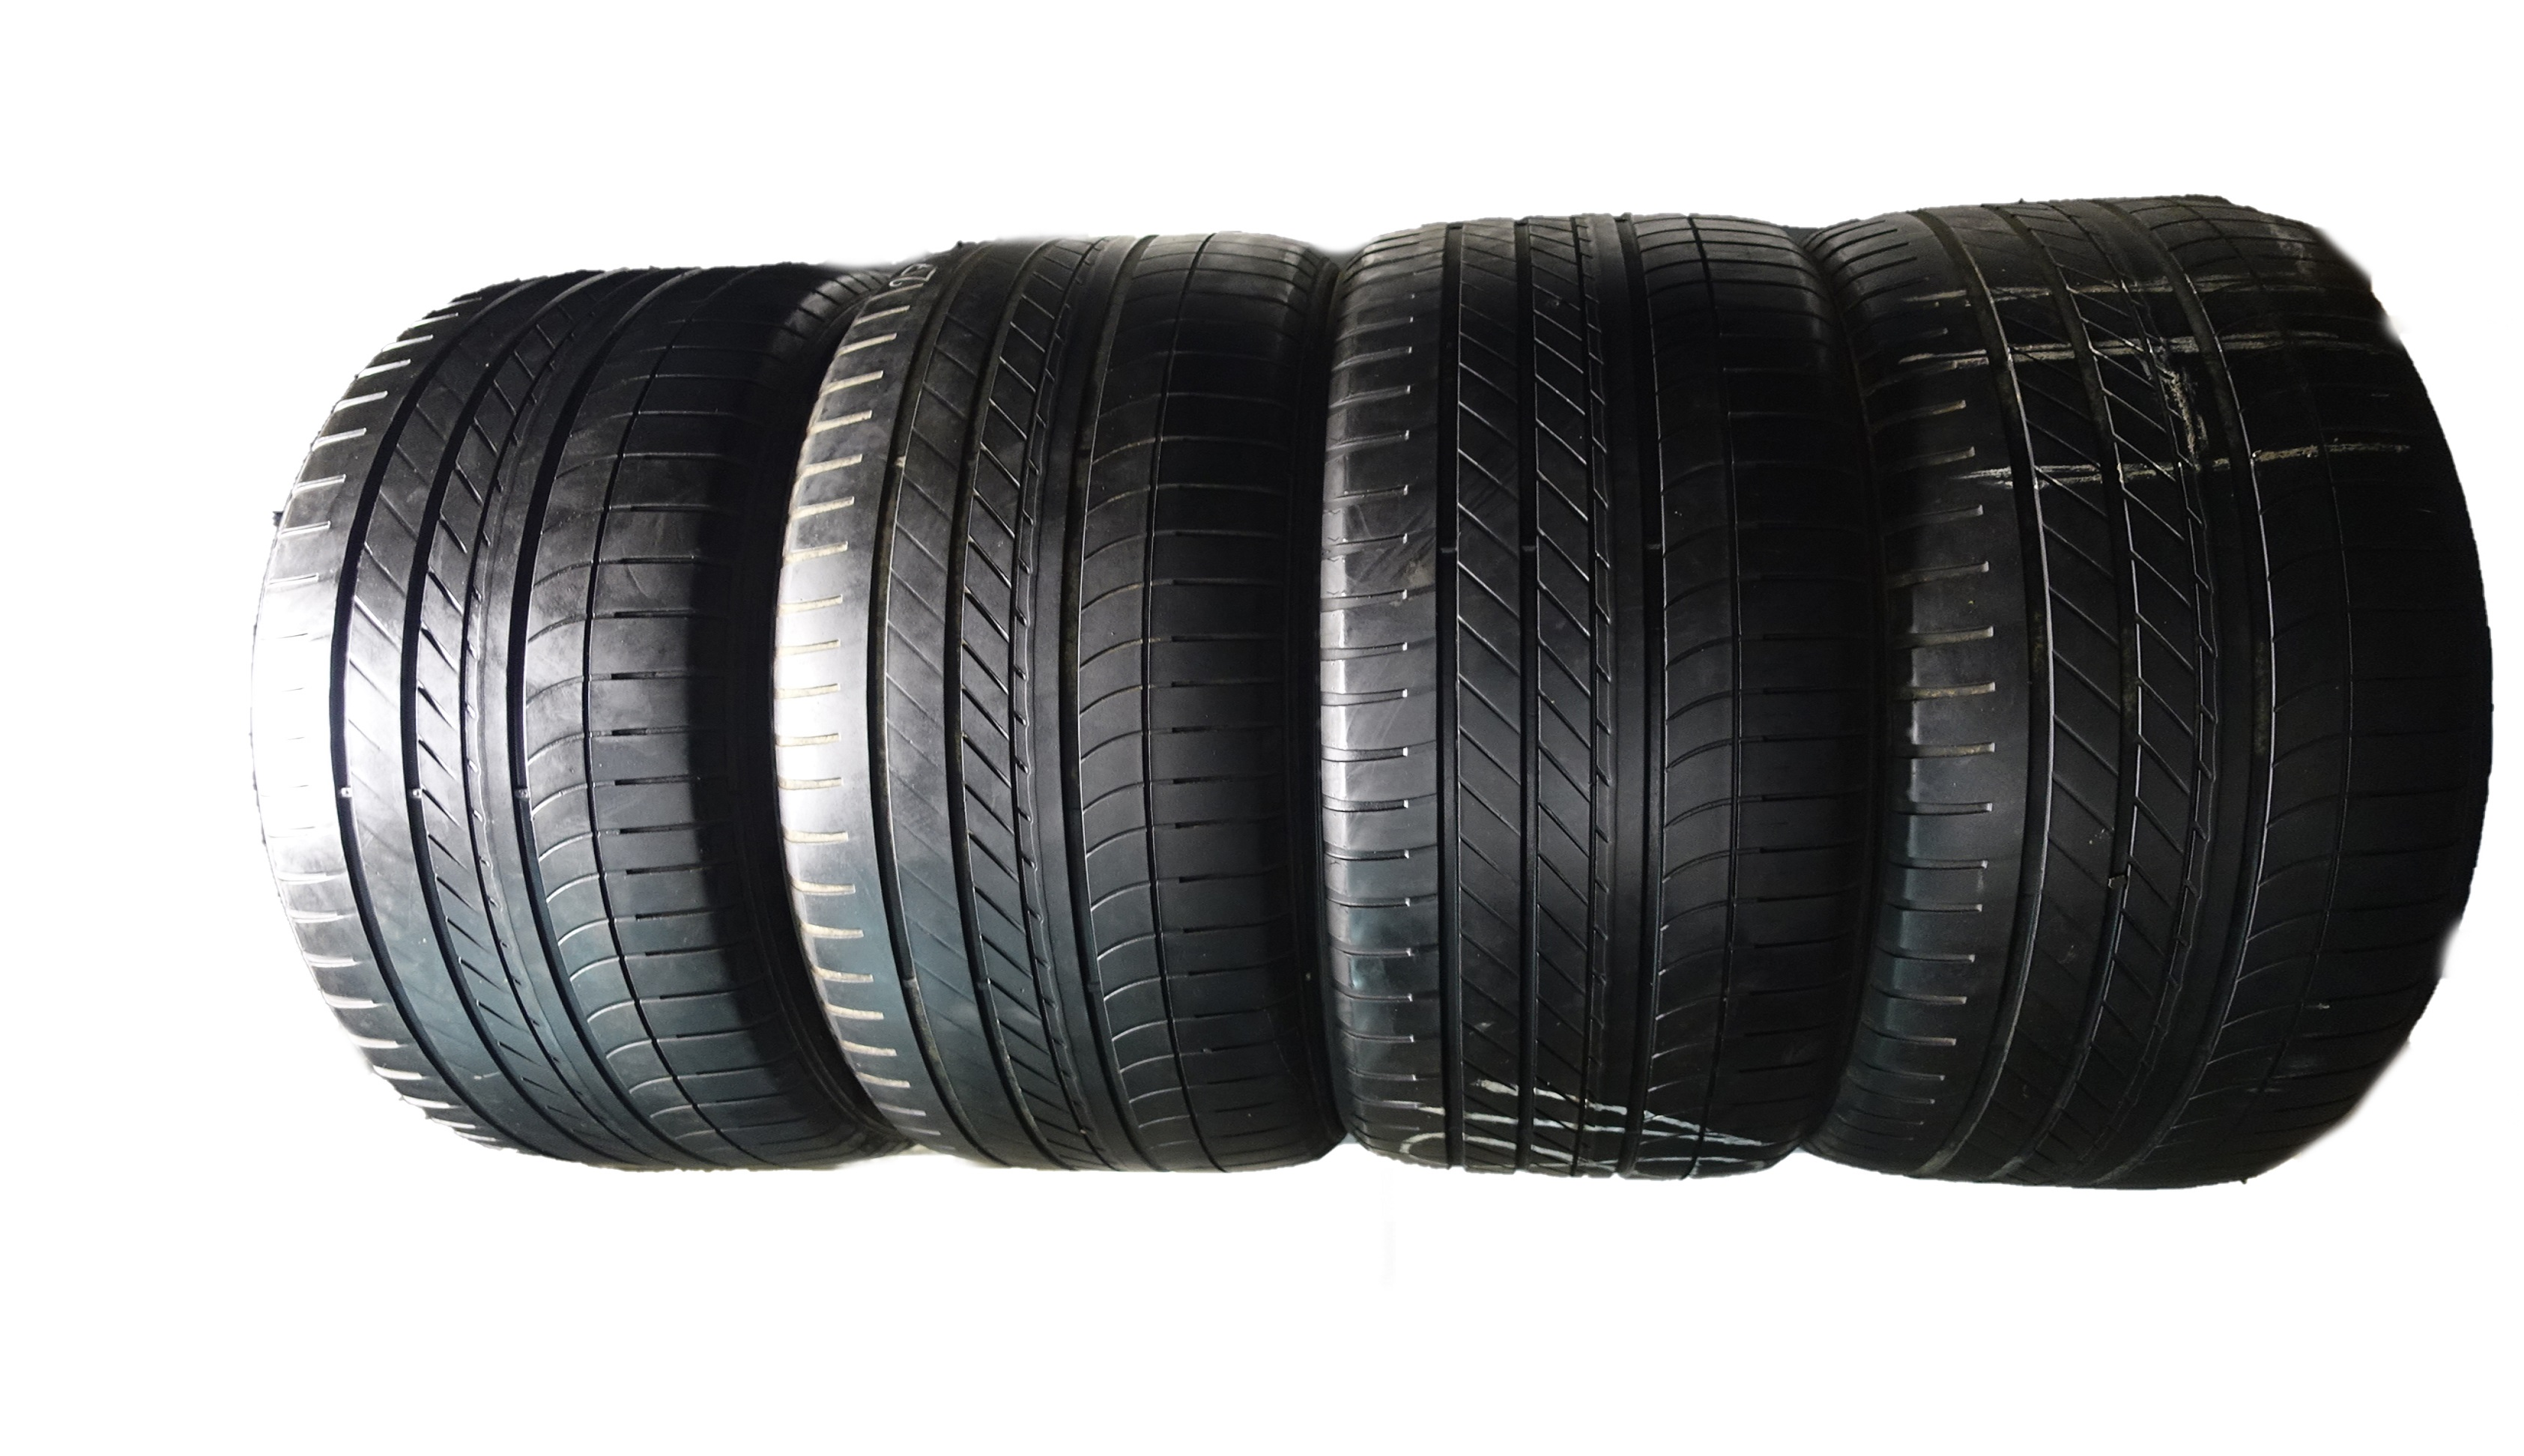 275 45 21 goodyear eagle f1 suv 4x4